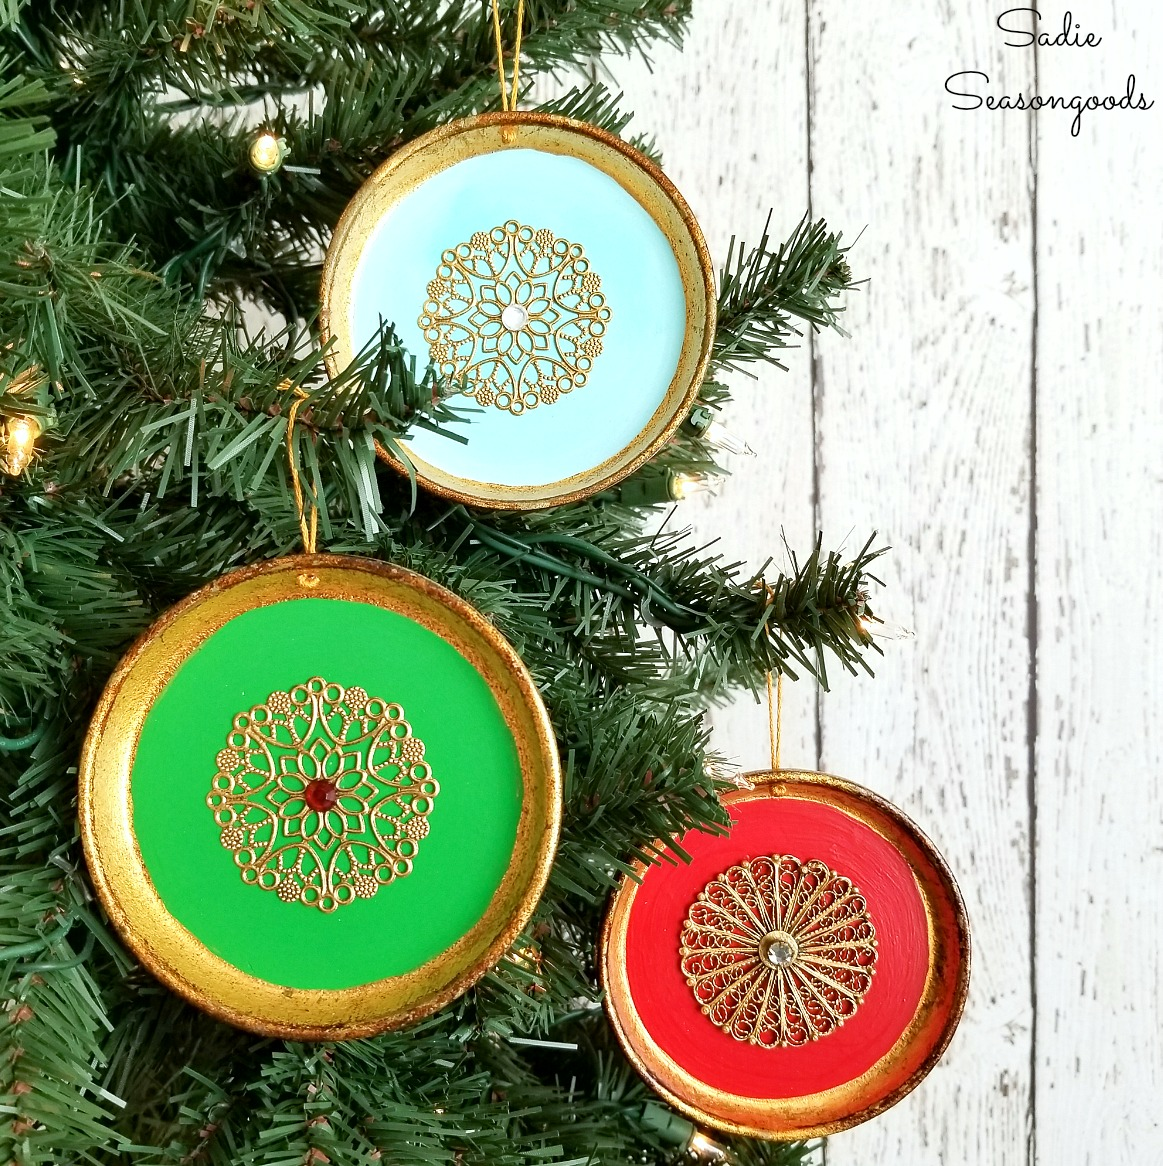 DIY Christmas ornaments by upcycling the drink coasters into Italian gold or Florentine gold with paint and filigree jewelry